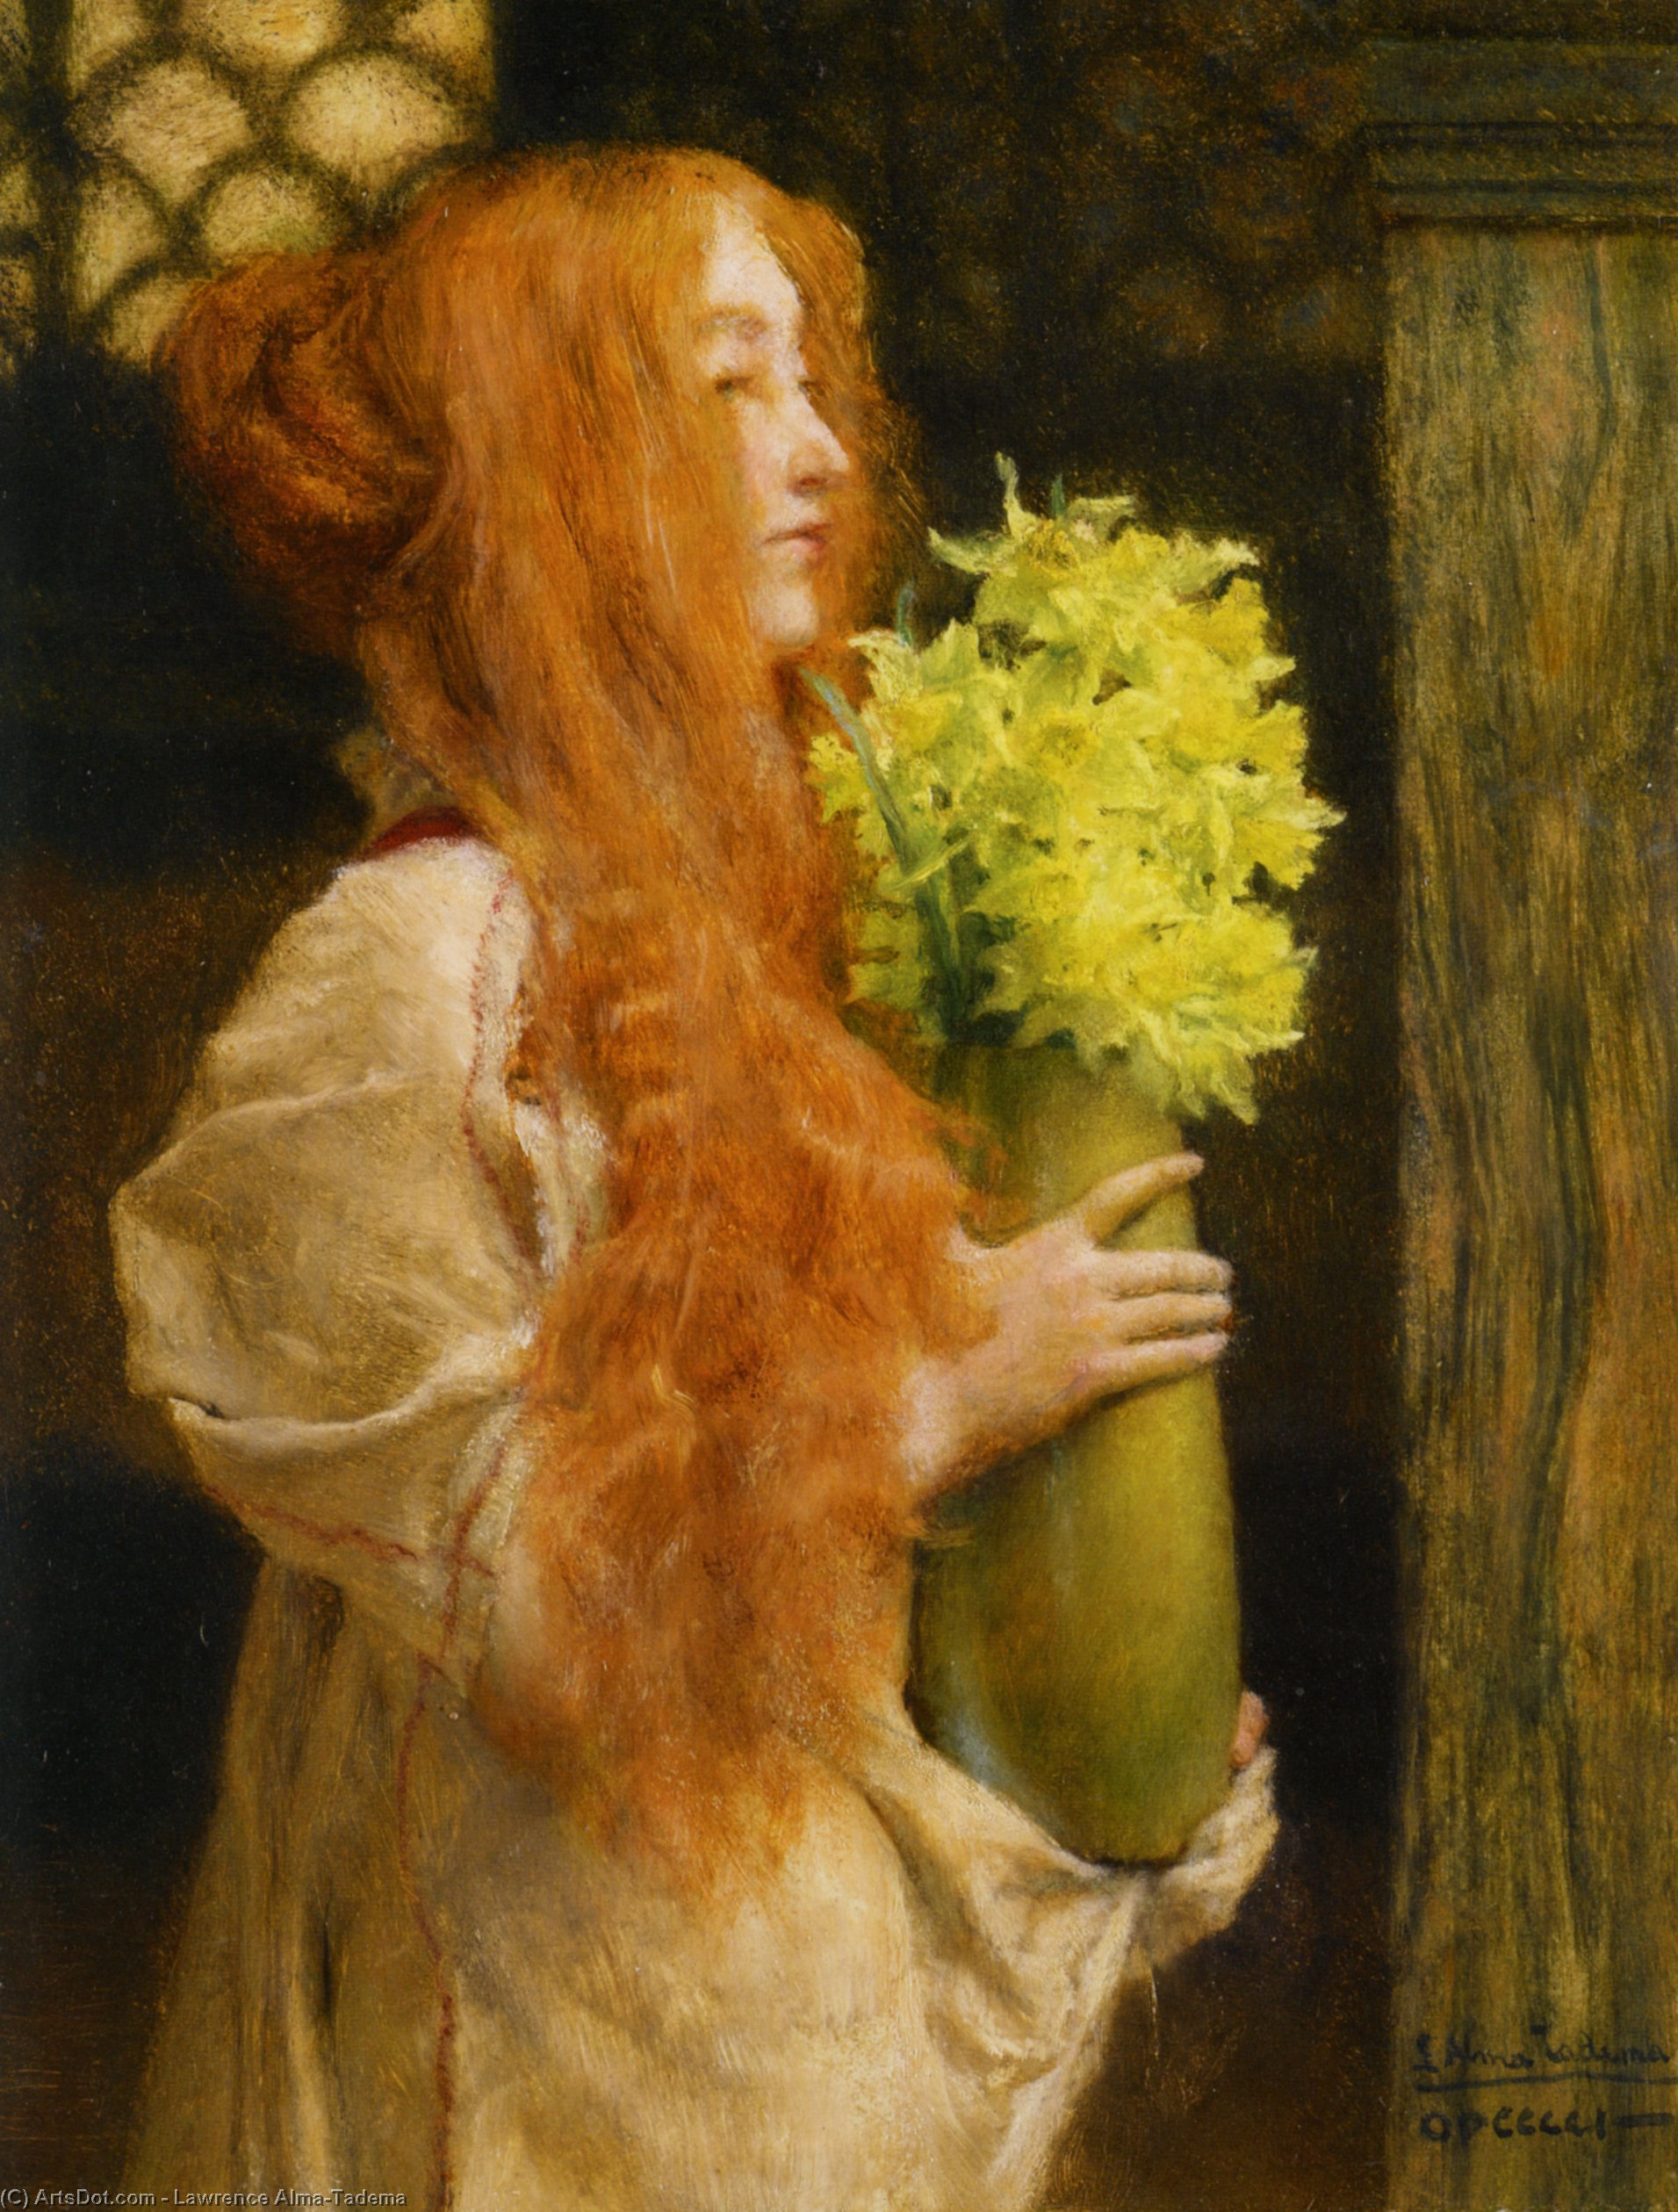 Wikioo.org - The Encyclopedia of Fine Arts - Painting, Artwork by Lawrence Alma-Tadema - Spring Flowers